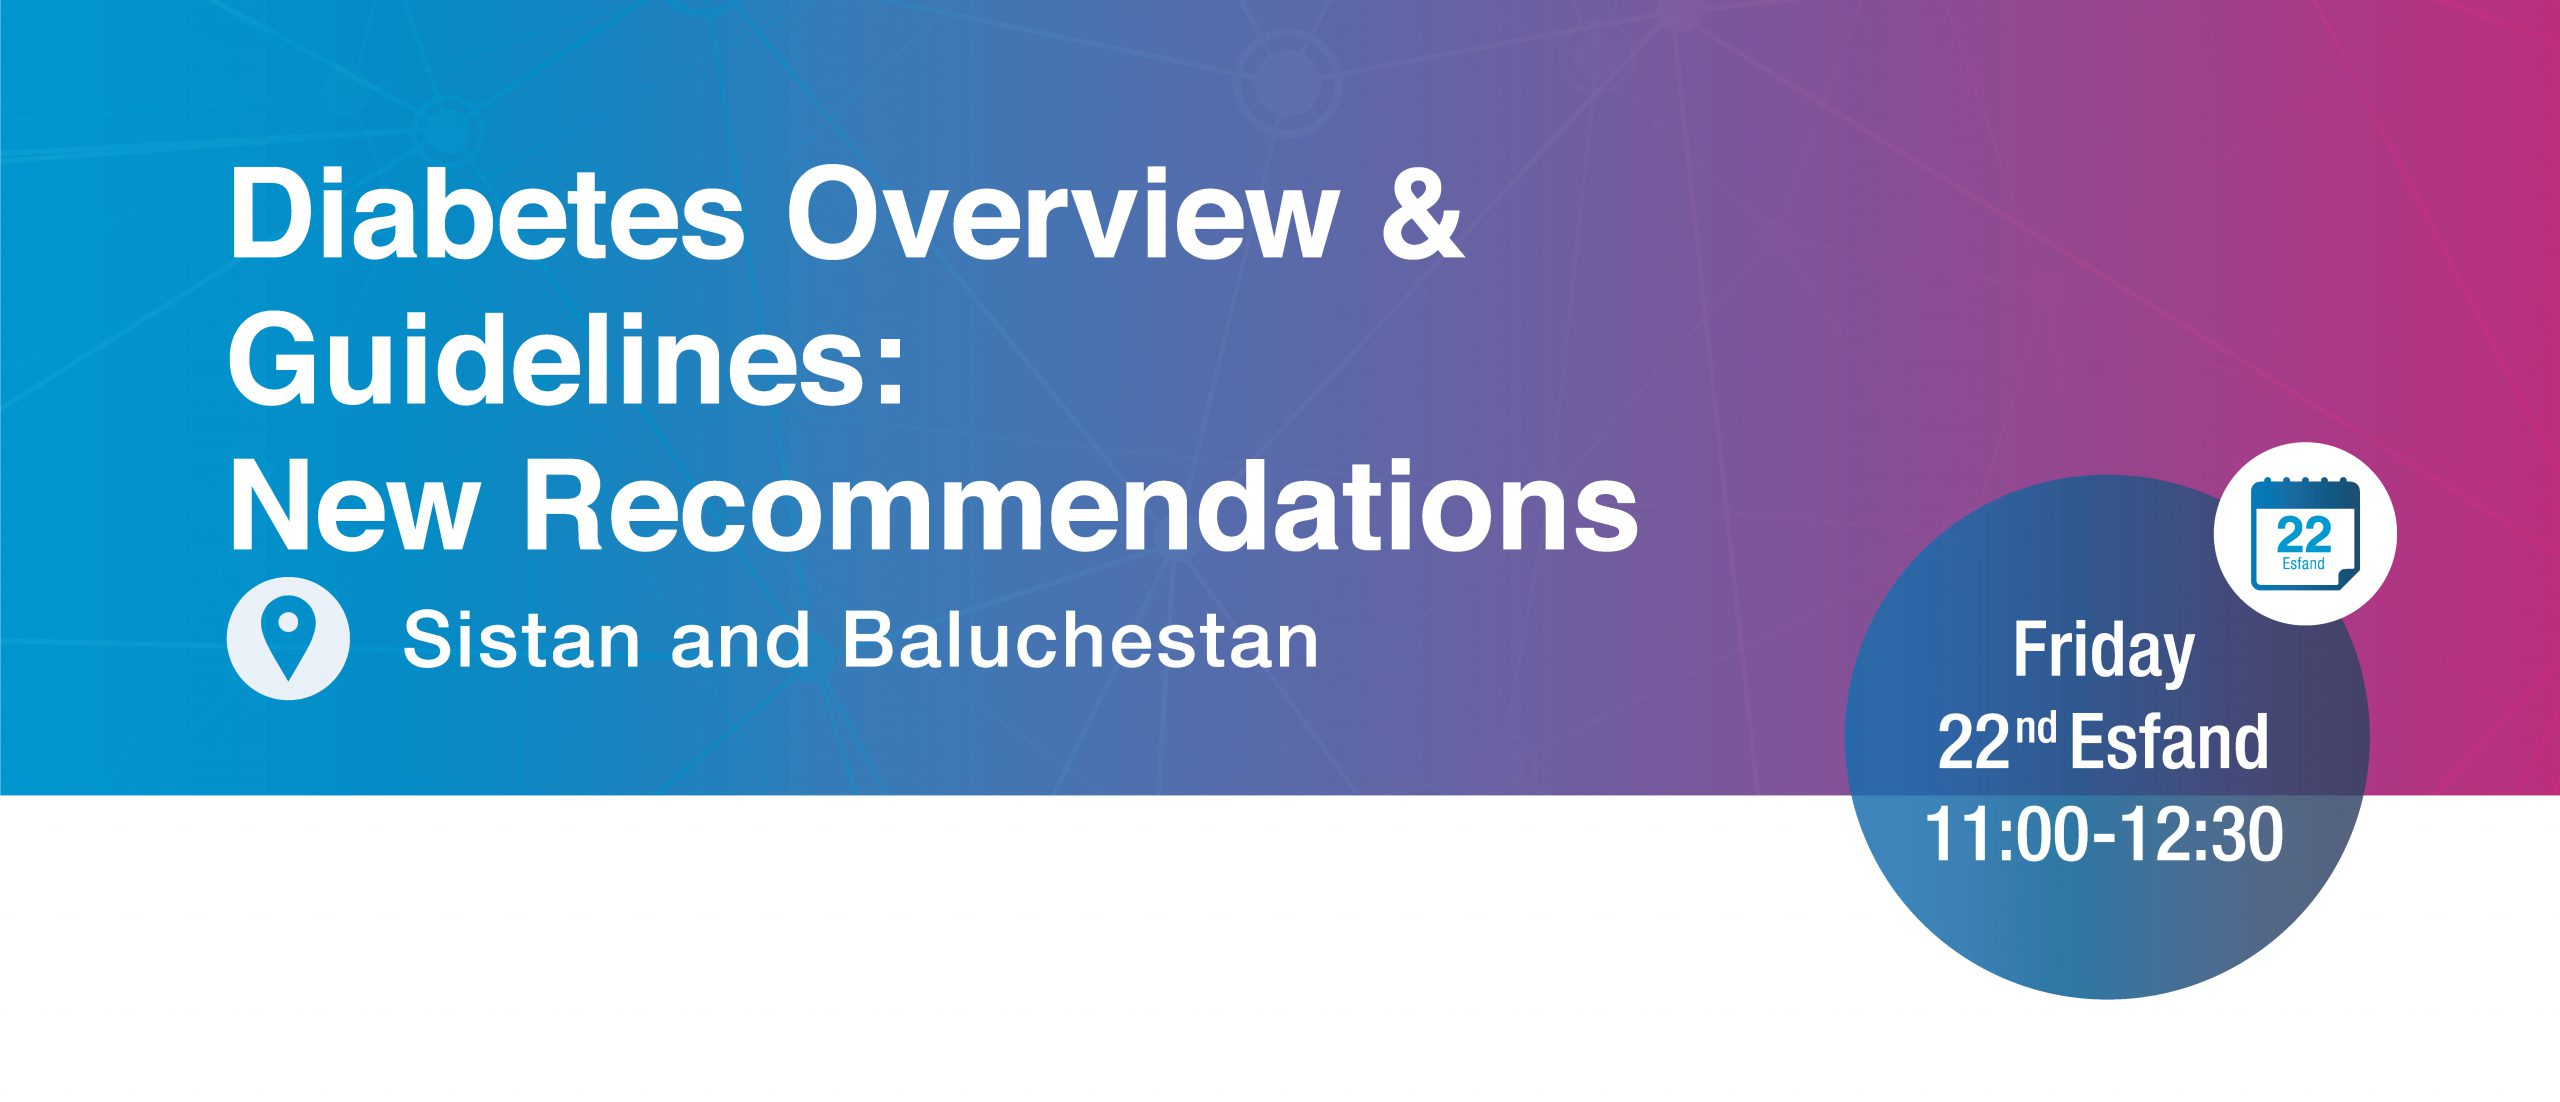 Diabetes Overview & Guidelines: New Recommendations